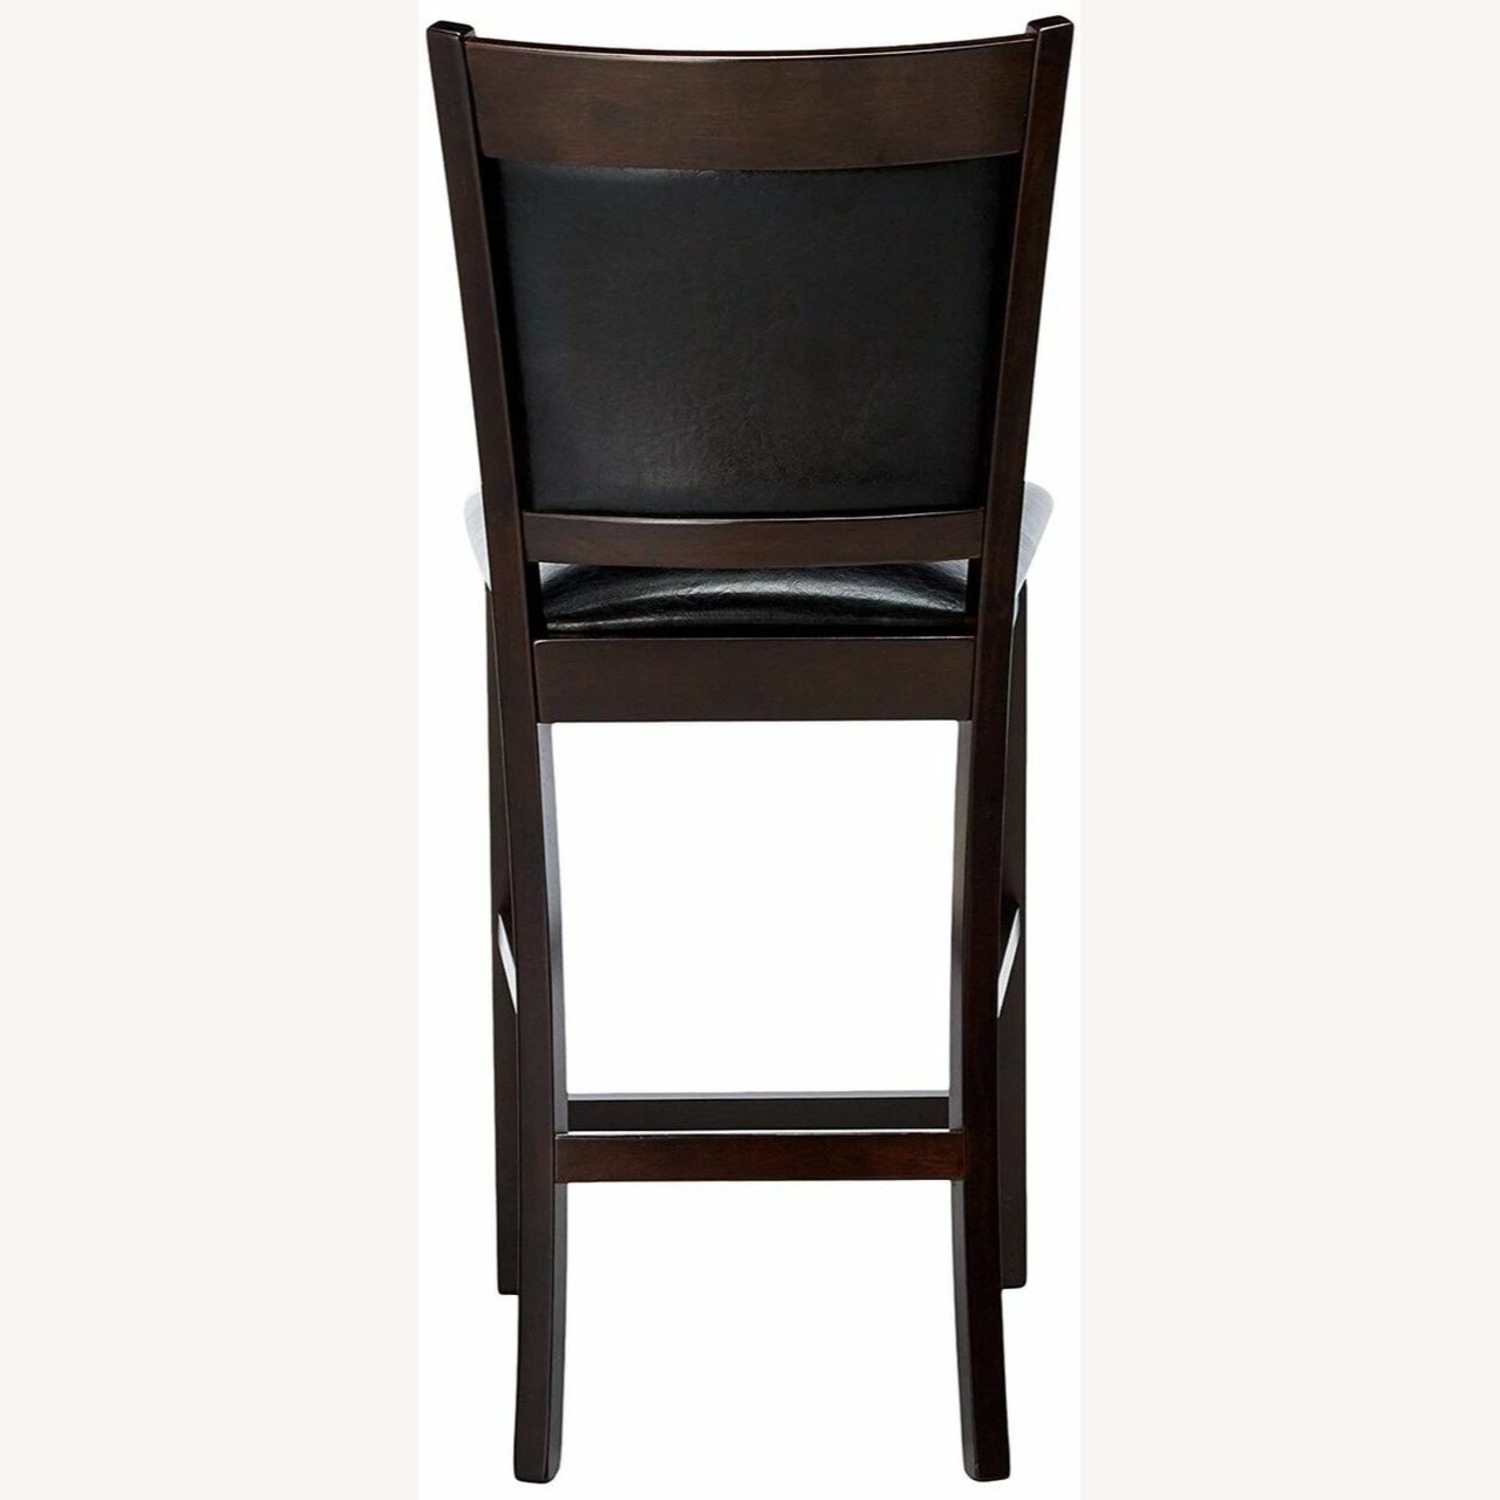 Counter Height Chair In Espresso Finish - image-4